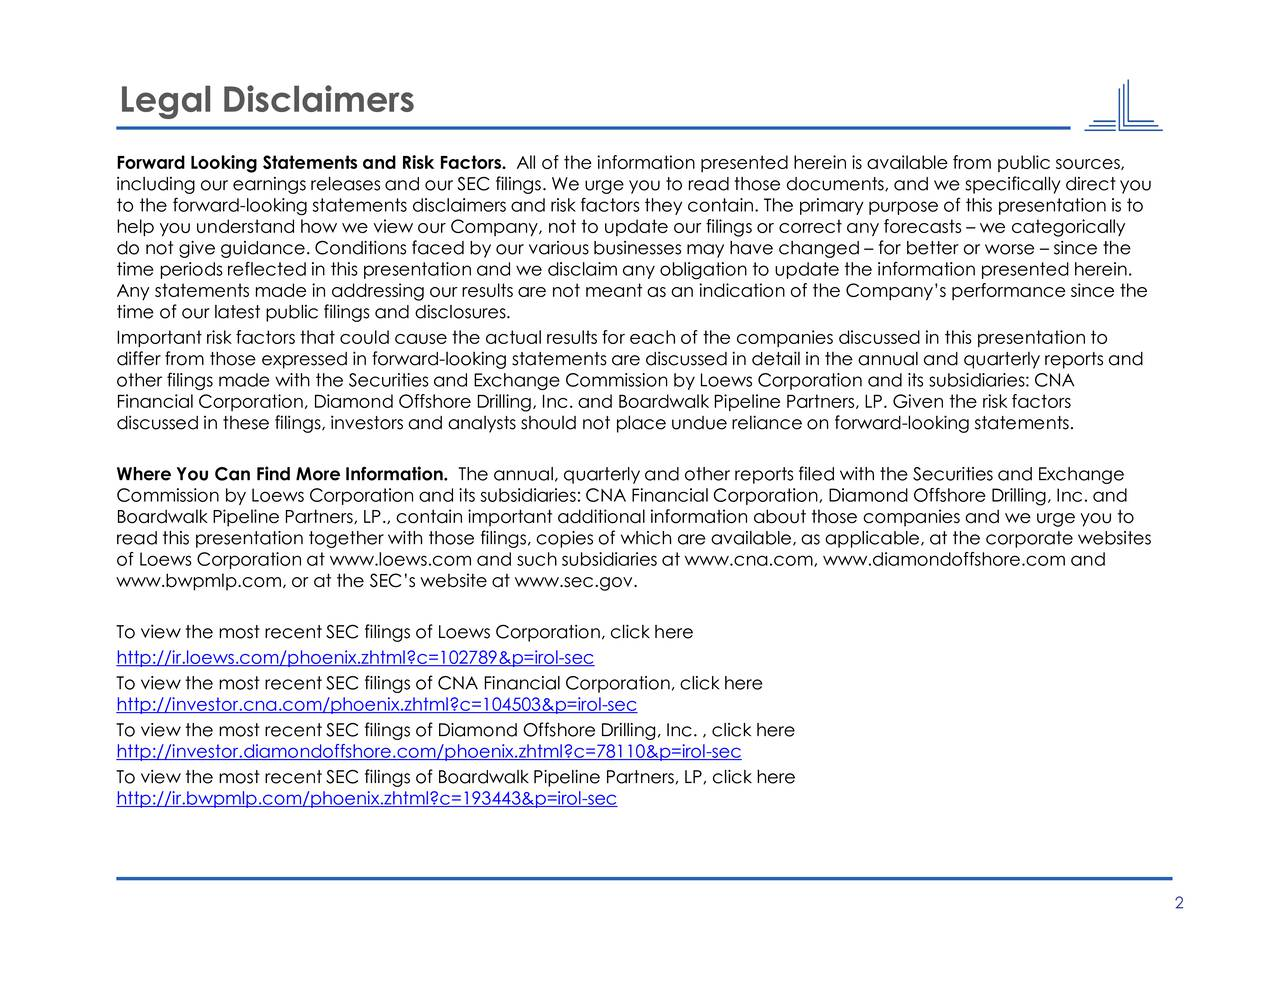 d tegoricance since the e urge you to fically direct you es: CNA ling, Inc. and resented harterly reports and is presentationpresentation toents. he corporate websites e from public sources, the Securities and Exchange update our filings or correct any forecasts  we ca.colsec=78110&p=irolsechore.com an us businesses may have chans: CNA Financial Corporation, Diamond Offshore Dril isk factors they contain. The primaadditional information about those companies and w here . We urge you to read those documents, and we specin the annual and qu theartners, LP, click here All of the information presented herein is availabl reliance on forwardlookingplicable, at t The annual, quarterly and other reports filed with Legal Disclaimers Forincluding our earnings releases and our SEC filingsr htT:/vto:/vi.oooitp//ie.ti./npidensoihCs.lop./mf4